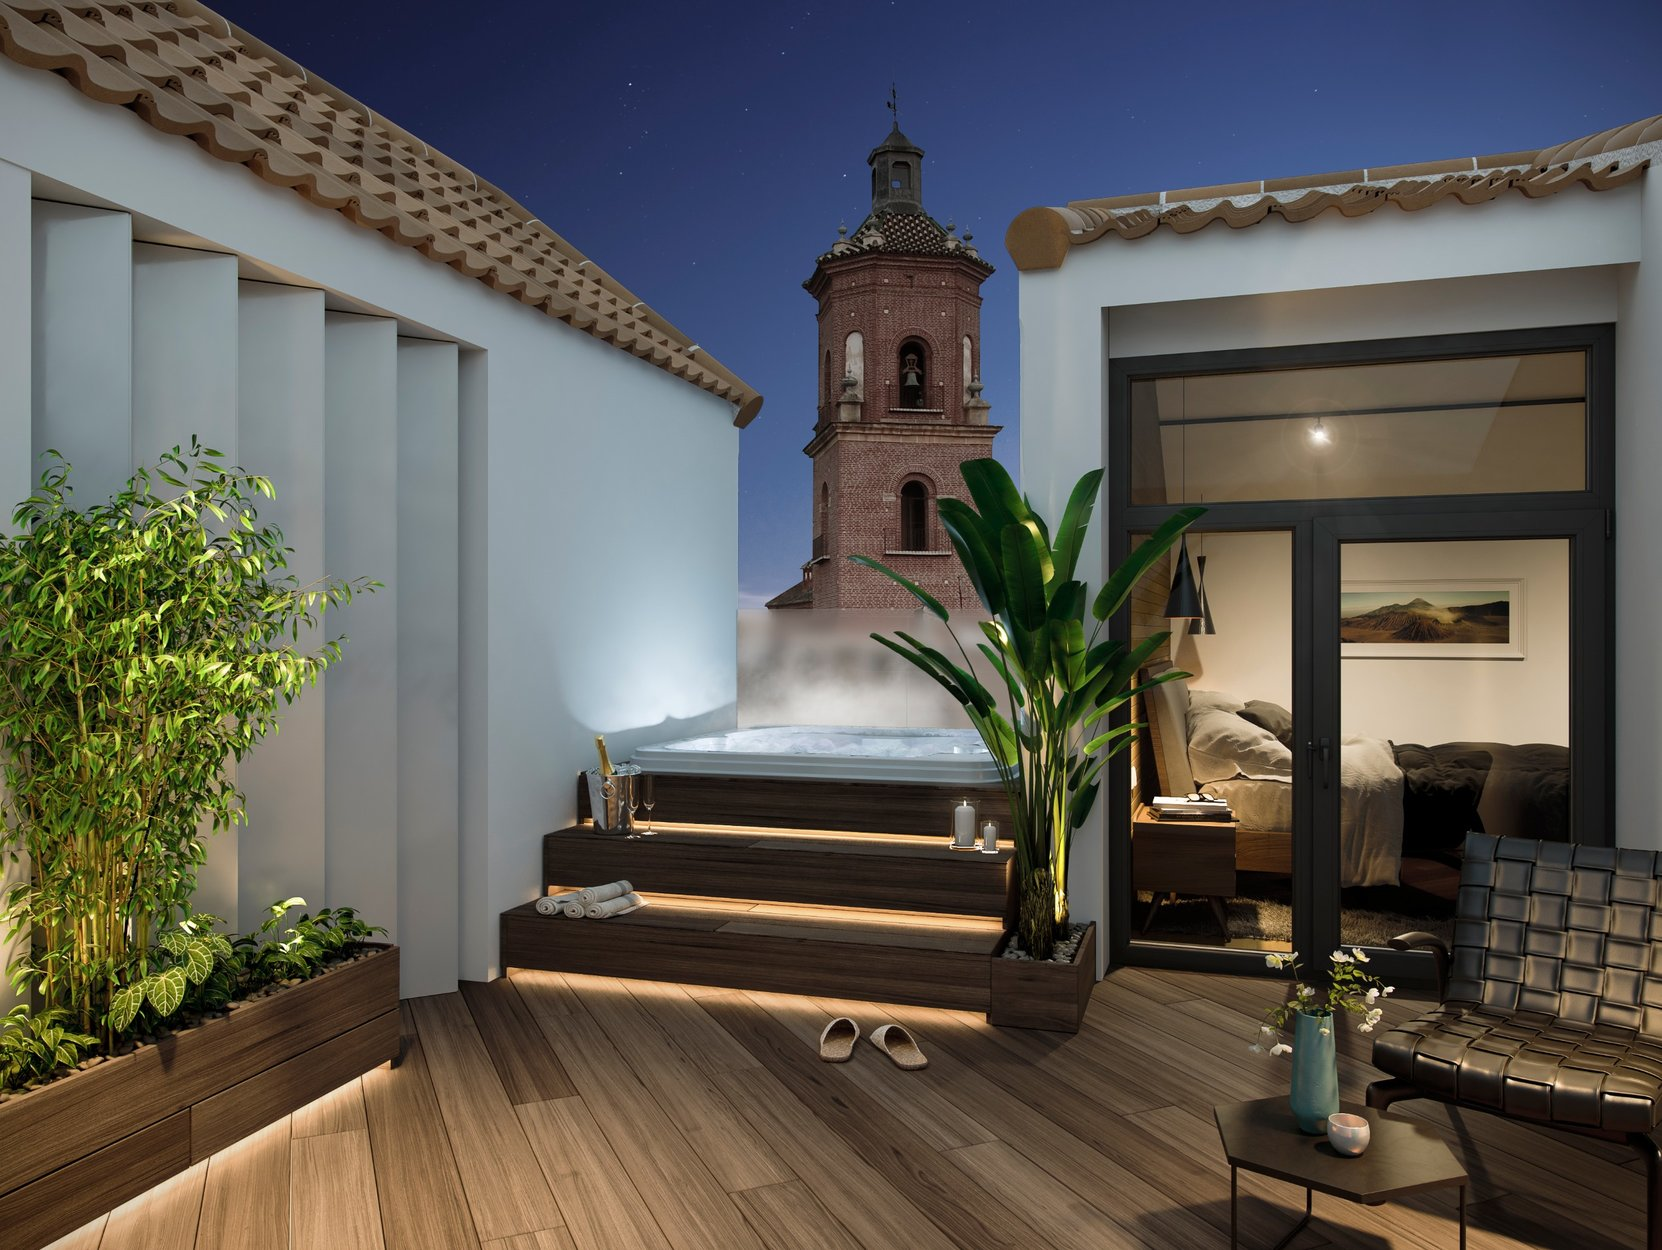 2 bedroom, 2 bathroom Penthouse for sale in Malaga Center ...